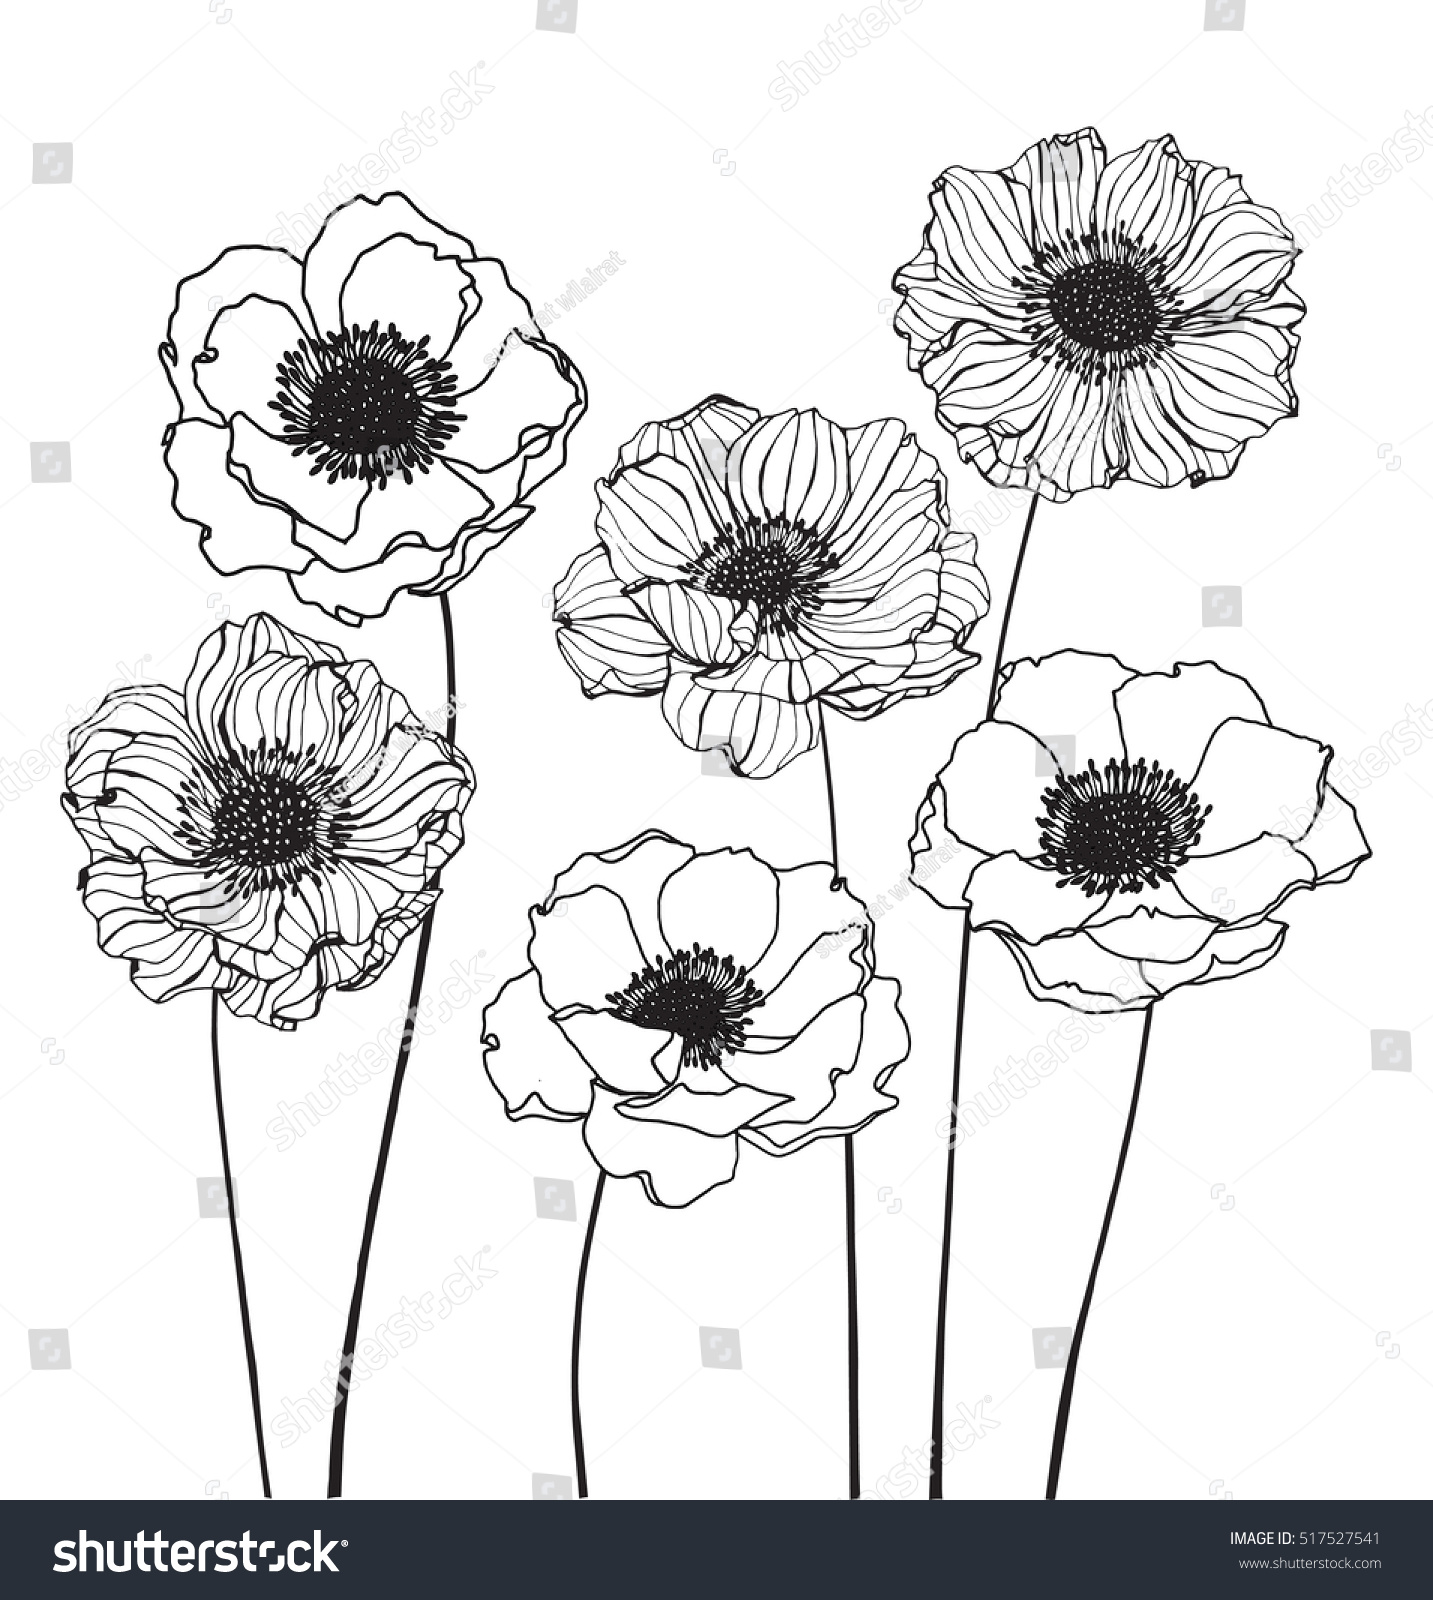 Anemone Flower Line Drawing : Collection set anemone flower by hand stock vector